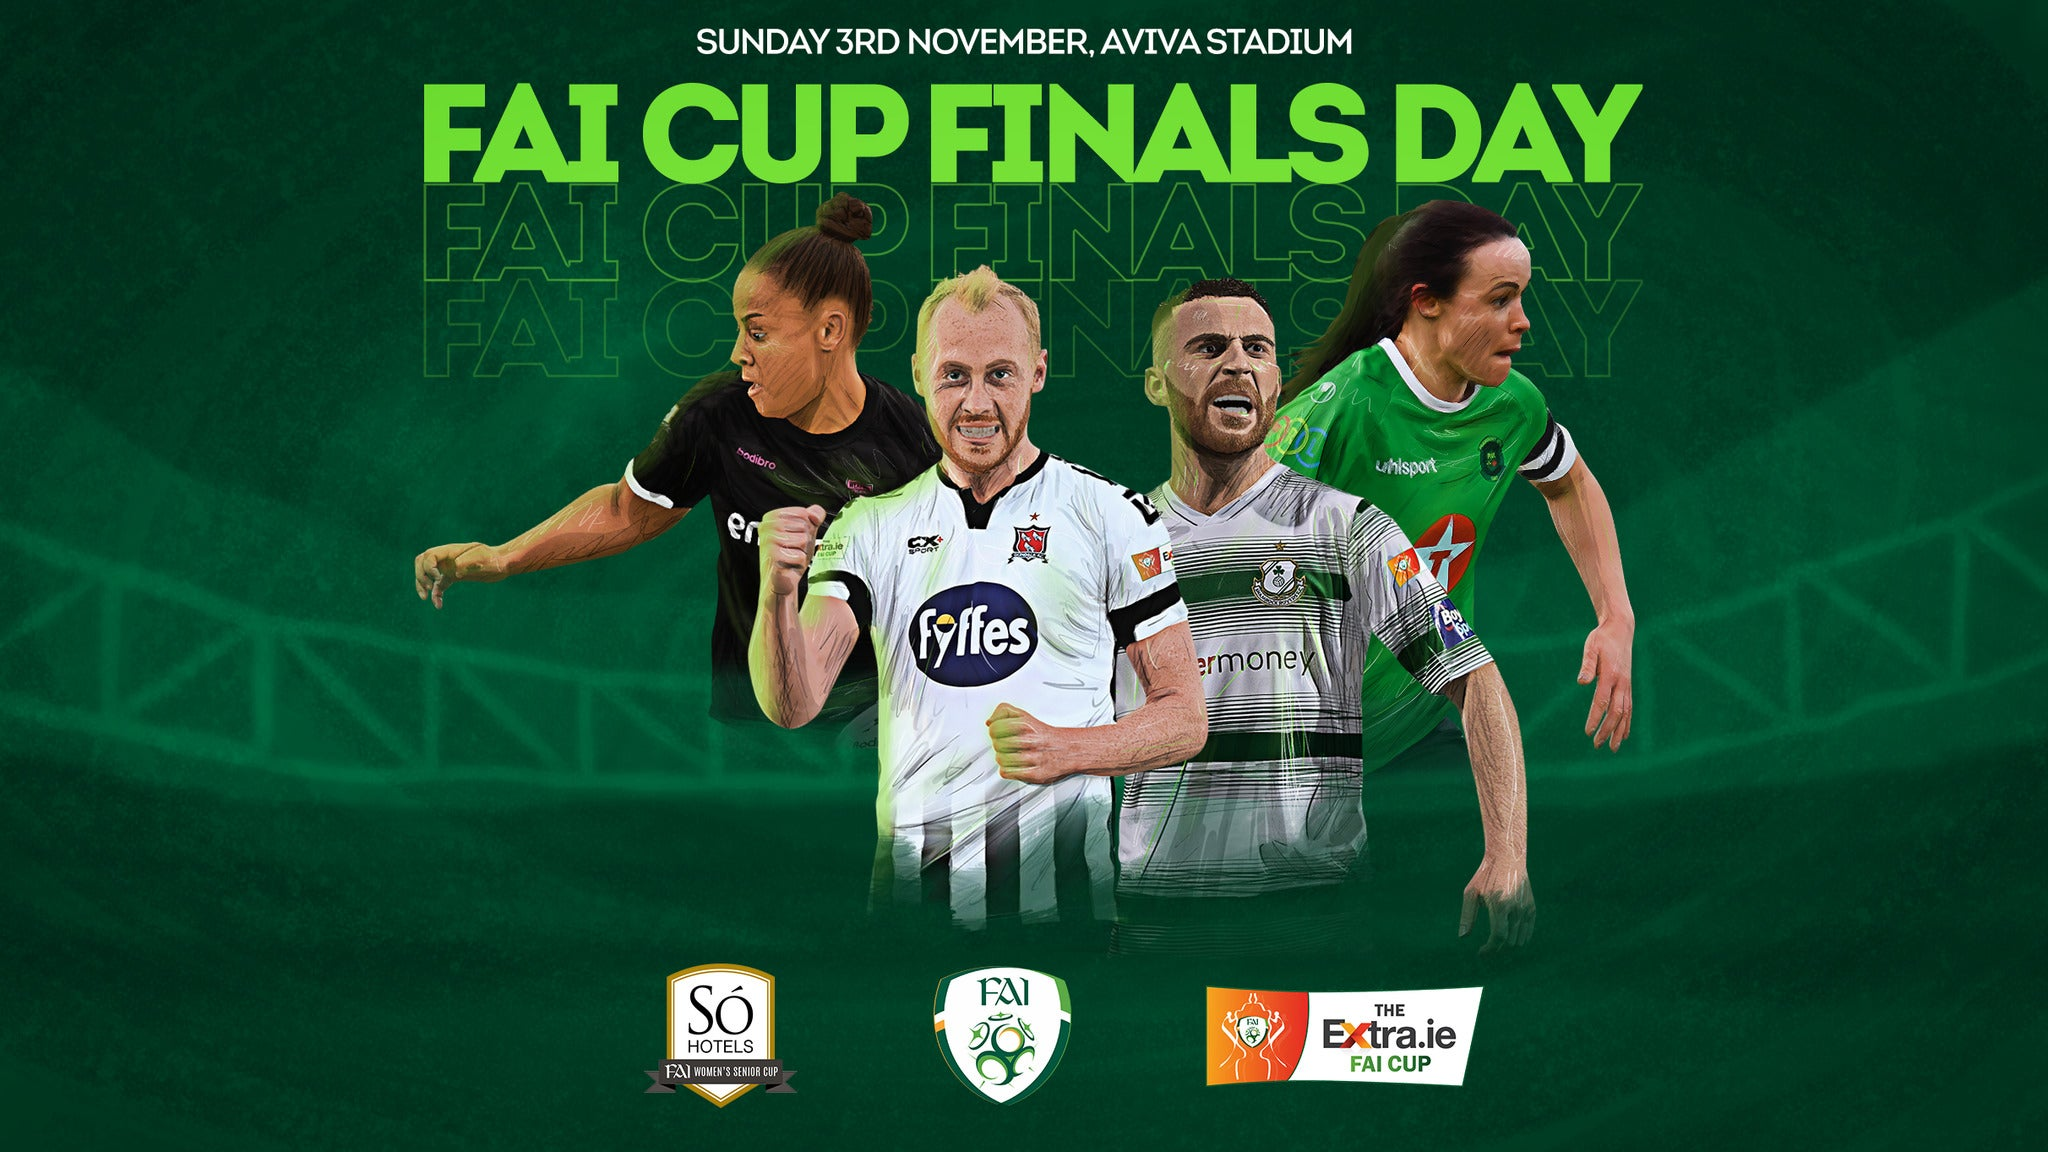 FAI Cup Finals Day - Dundalk/Shamrock Rovers & Peamount/Wexford Youths Seating Plans